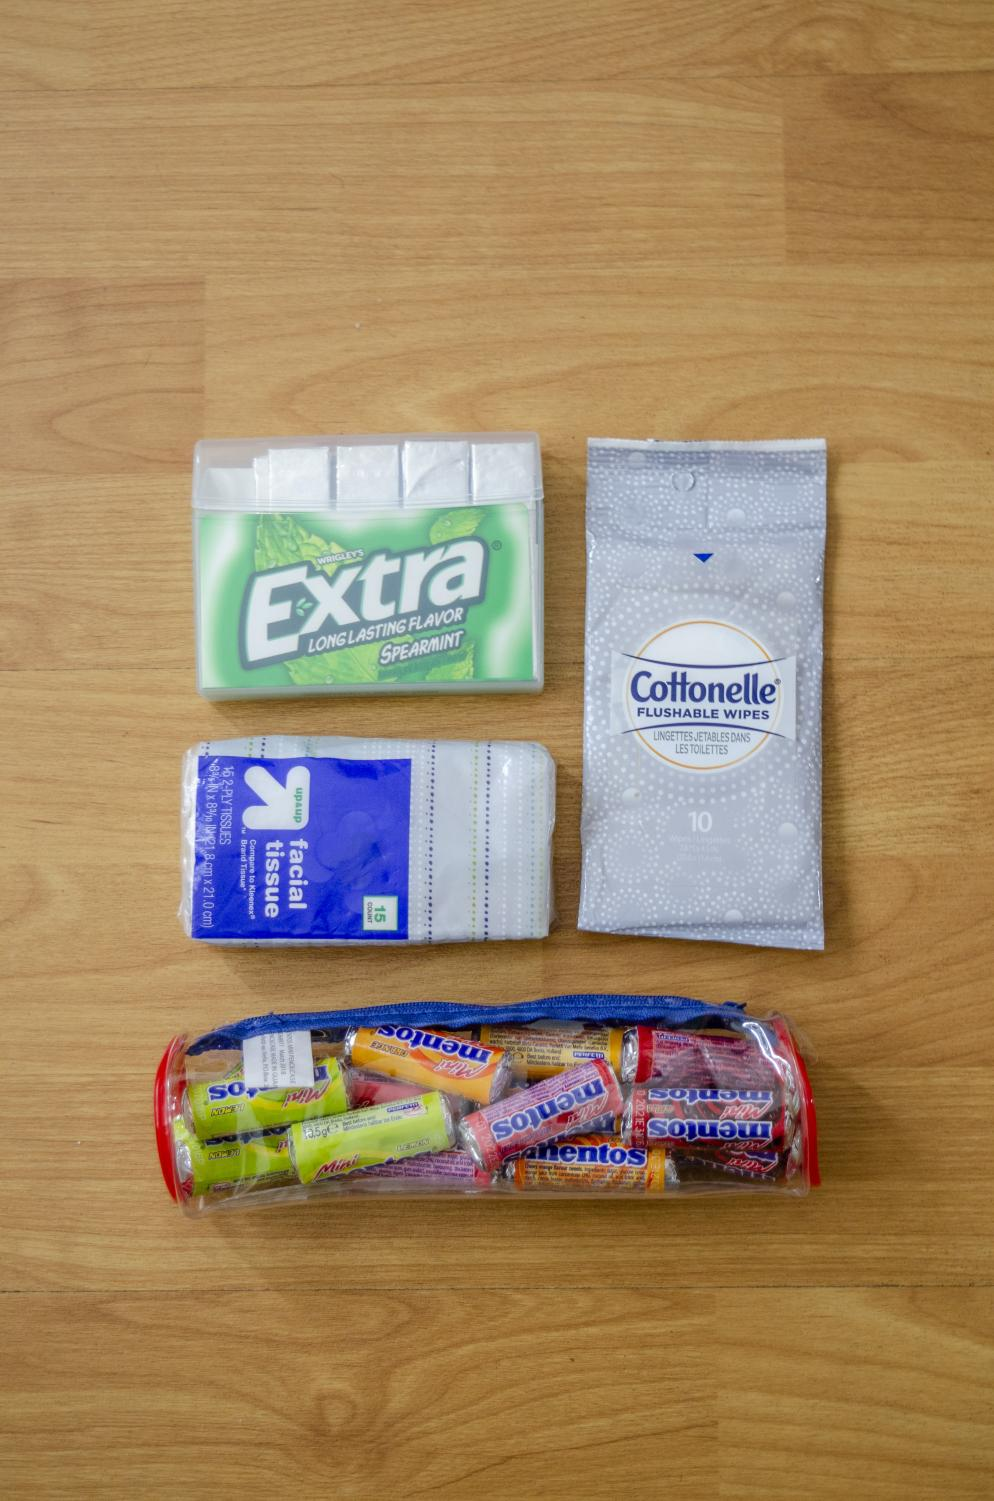 Going waste-free forced me to get rid of potential waste like gum, candy wrappers and paper tissue from my backpack. It was hard to go throughout the day without those items, but I eventually got used to it.